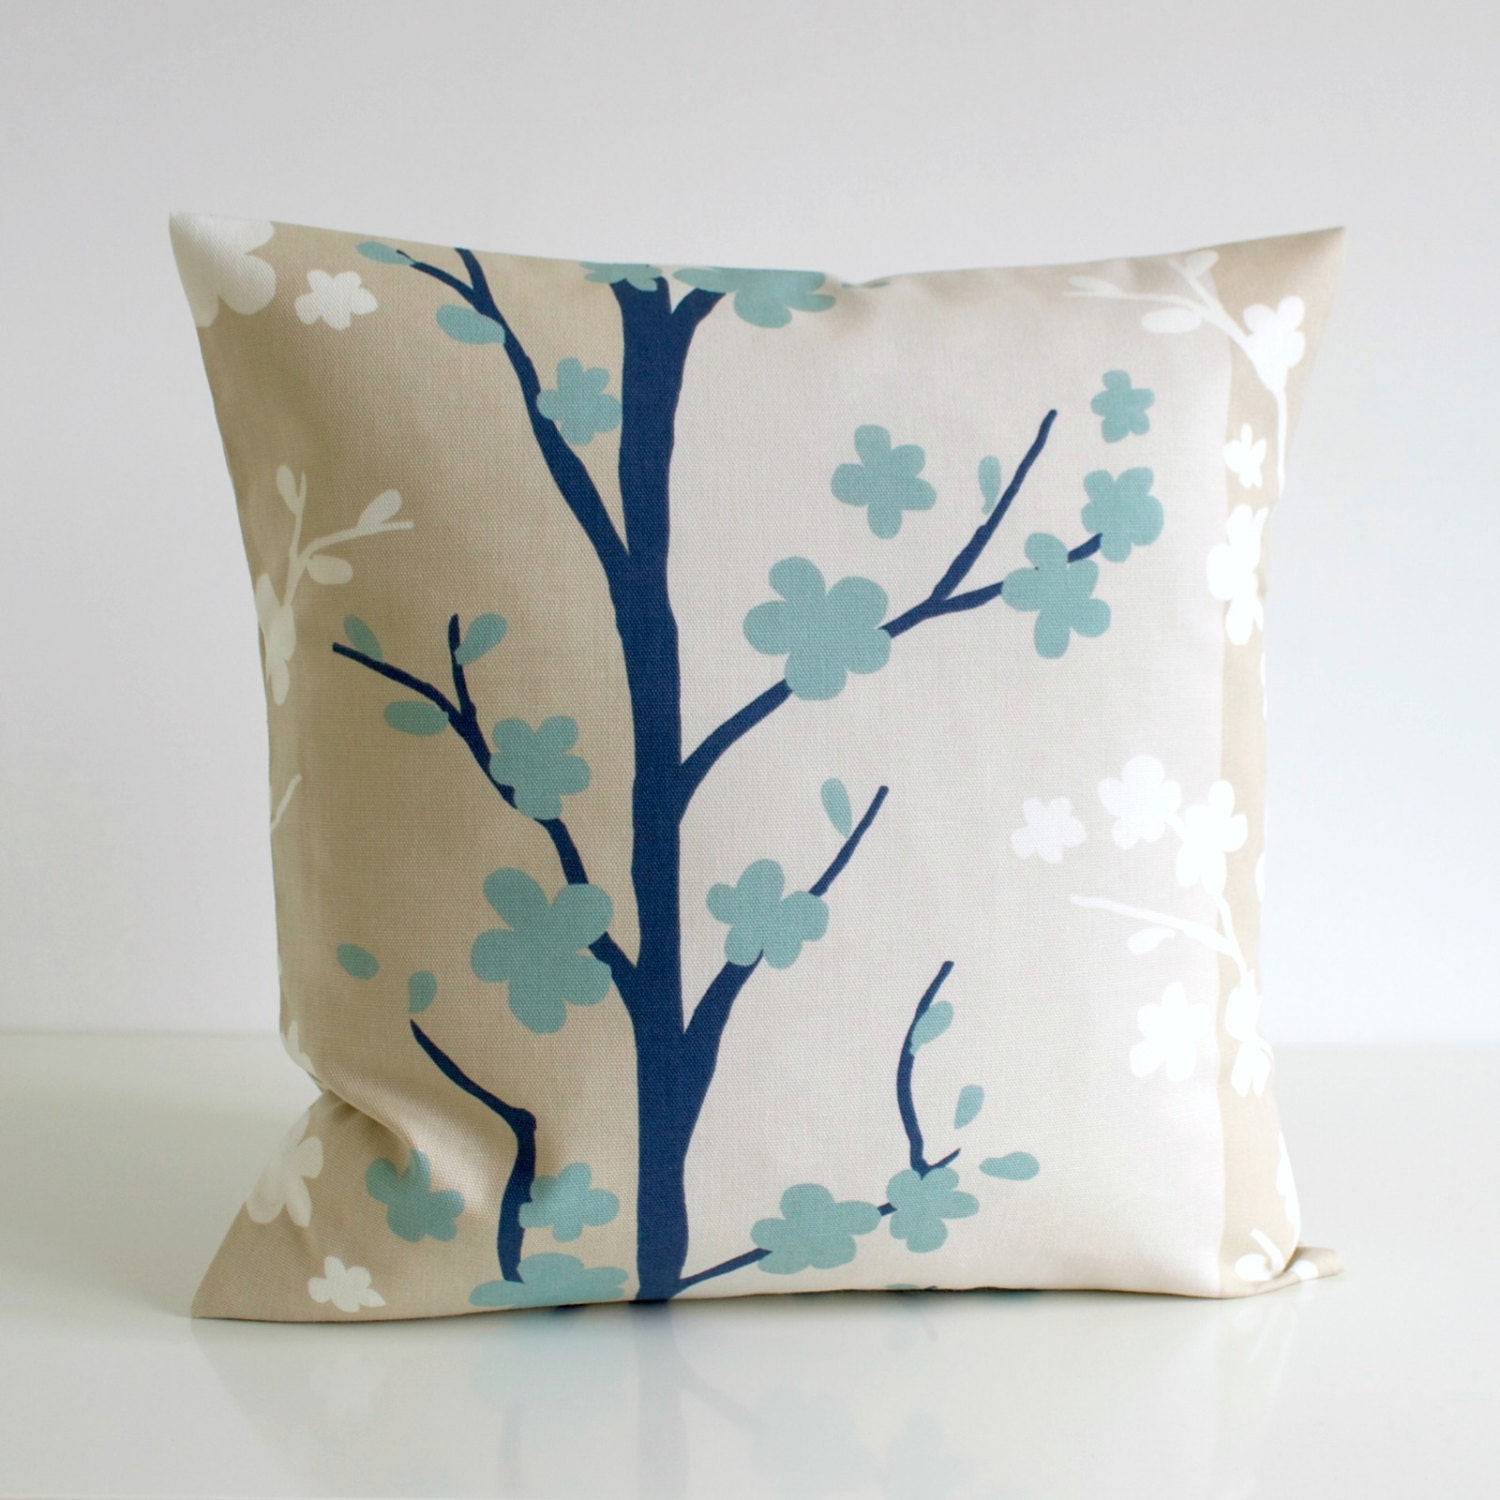 16x16 pillow cover 16 inch duck egg blue cushion by couplehome. Black Bedroom Furniture Sets. Home Design Ideas